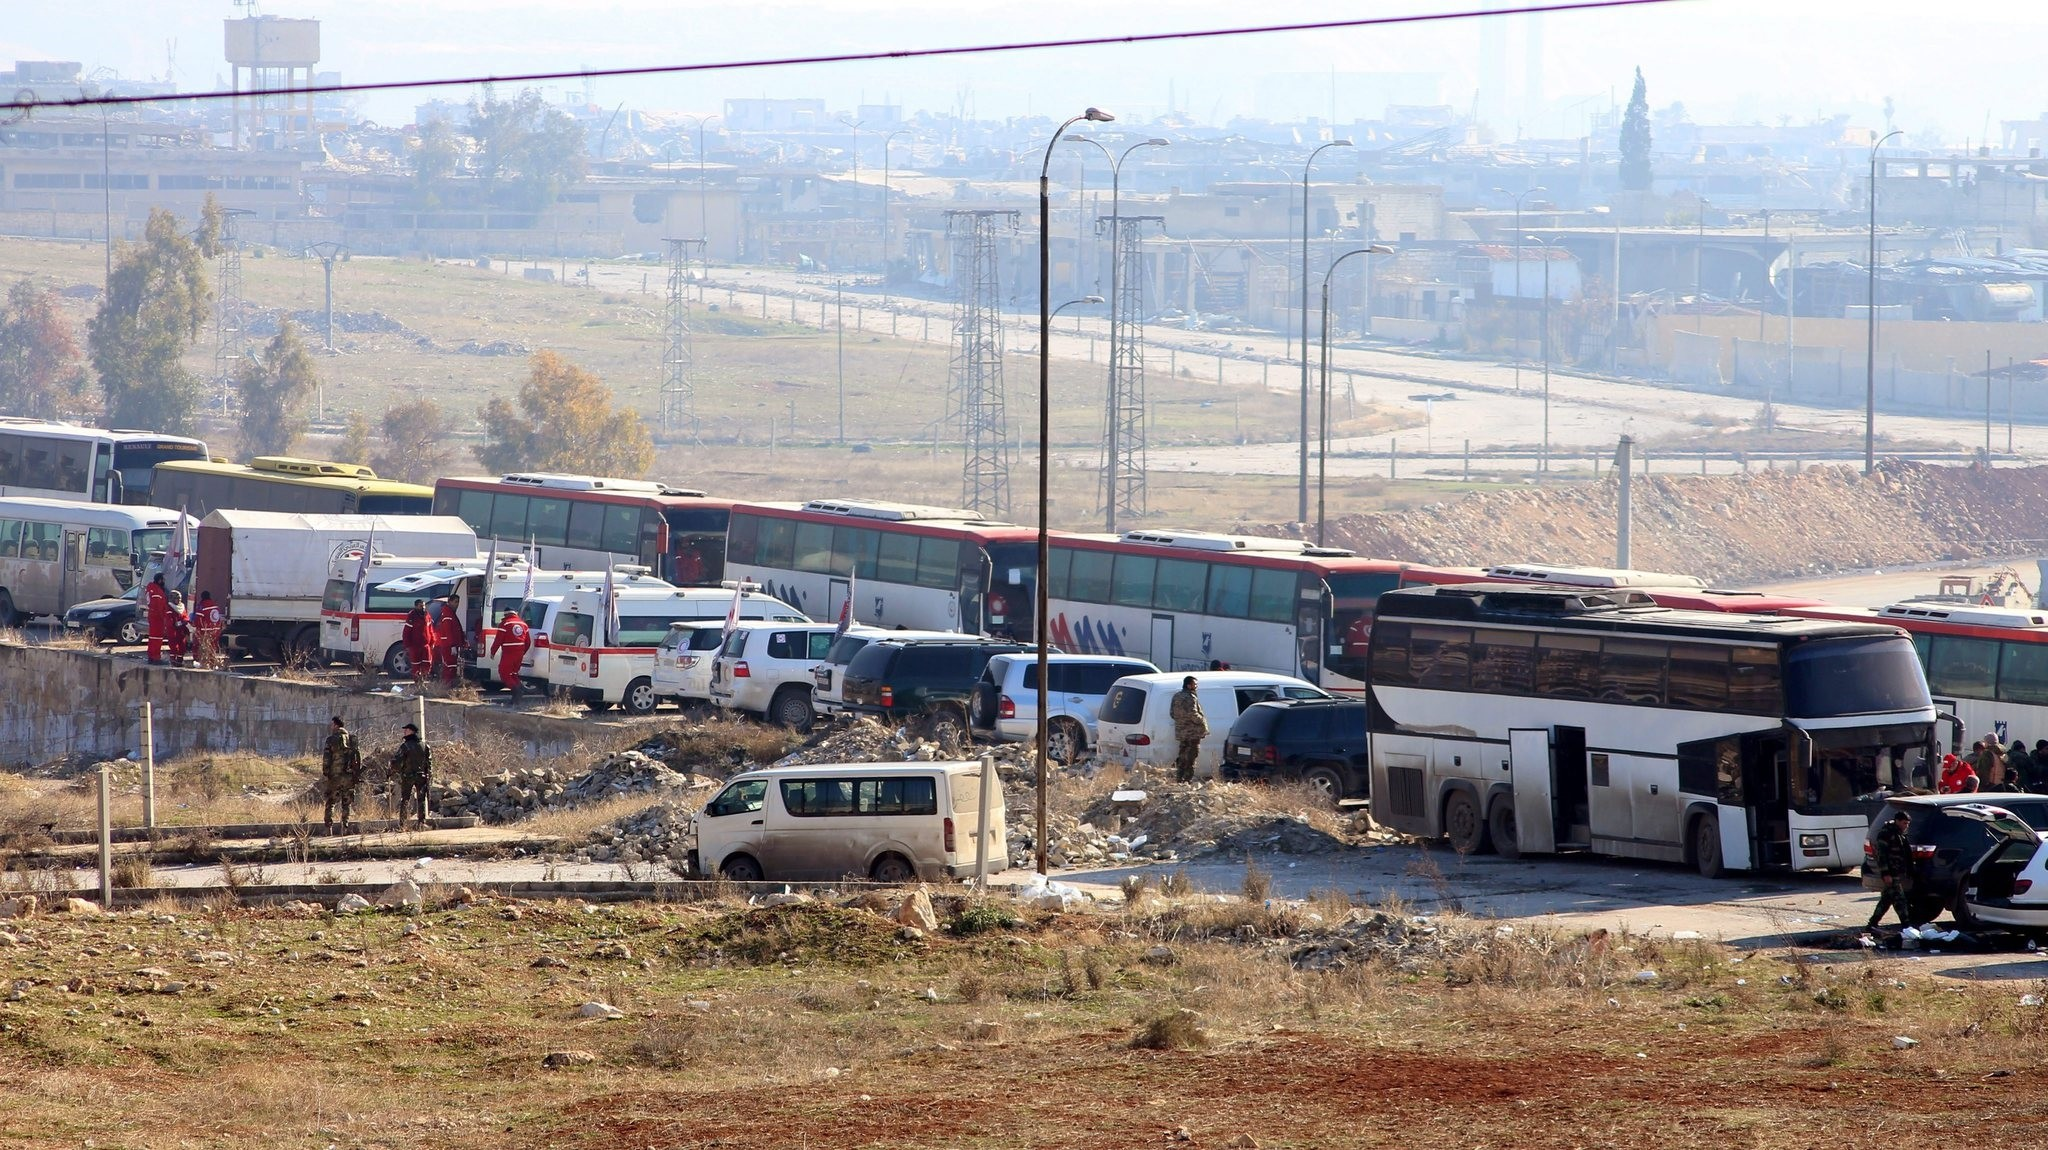 Buses wait to evacuate a group of fighters and their families from eastern neighborhoods of Aleppo, Syria, 19 December 2016. (EPA Photo)